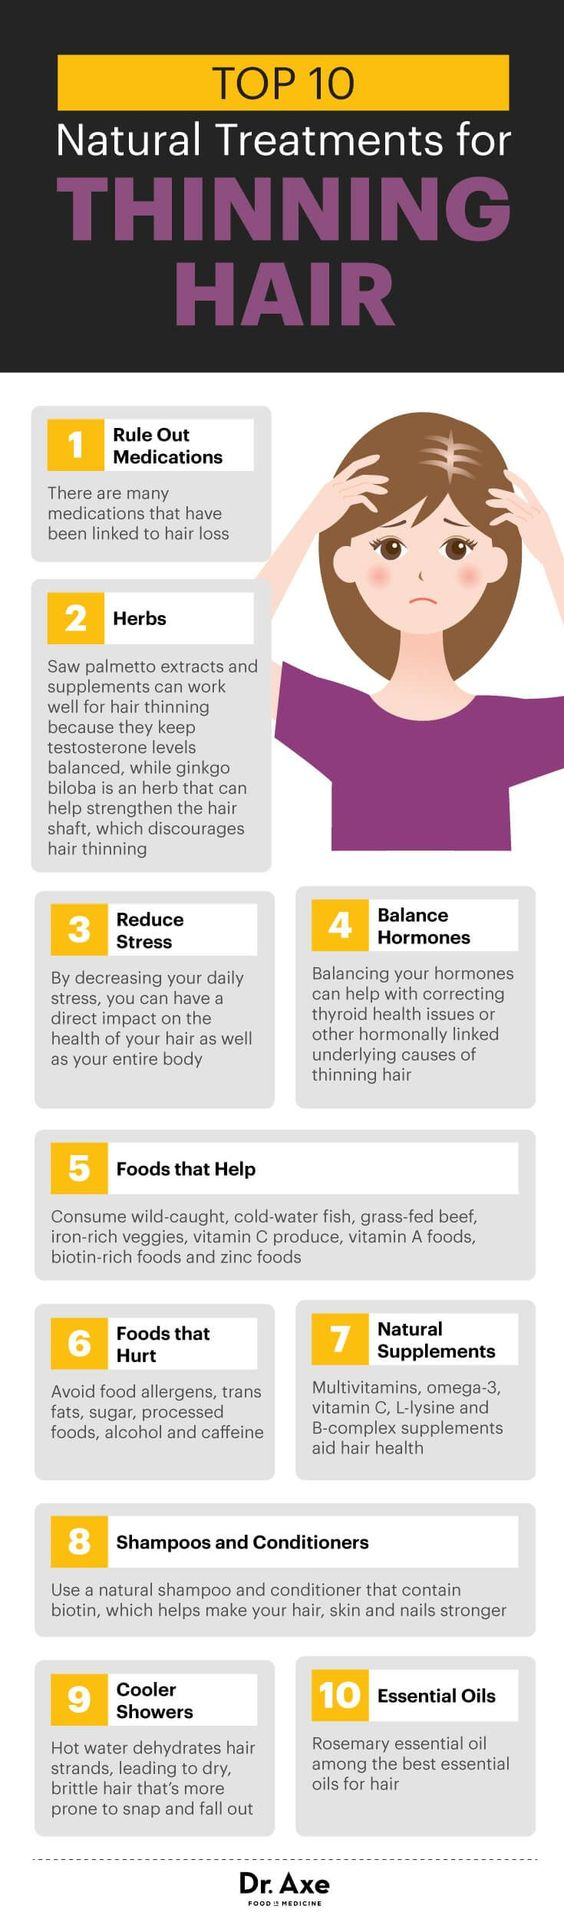 10 natural treatments for thinning hair - Dr. Axe http://www.draxe.com #health #holistic #natural: